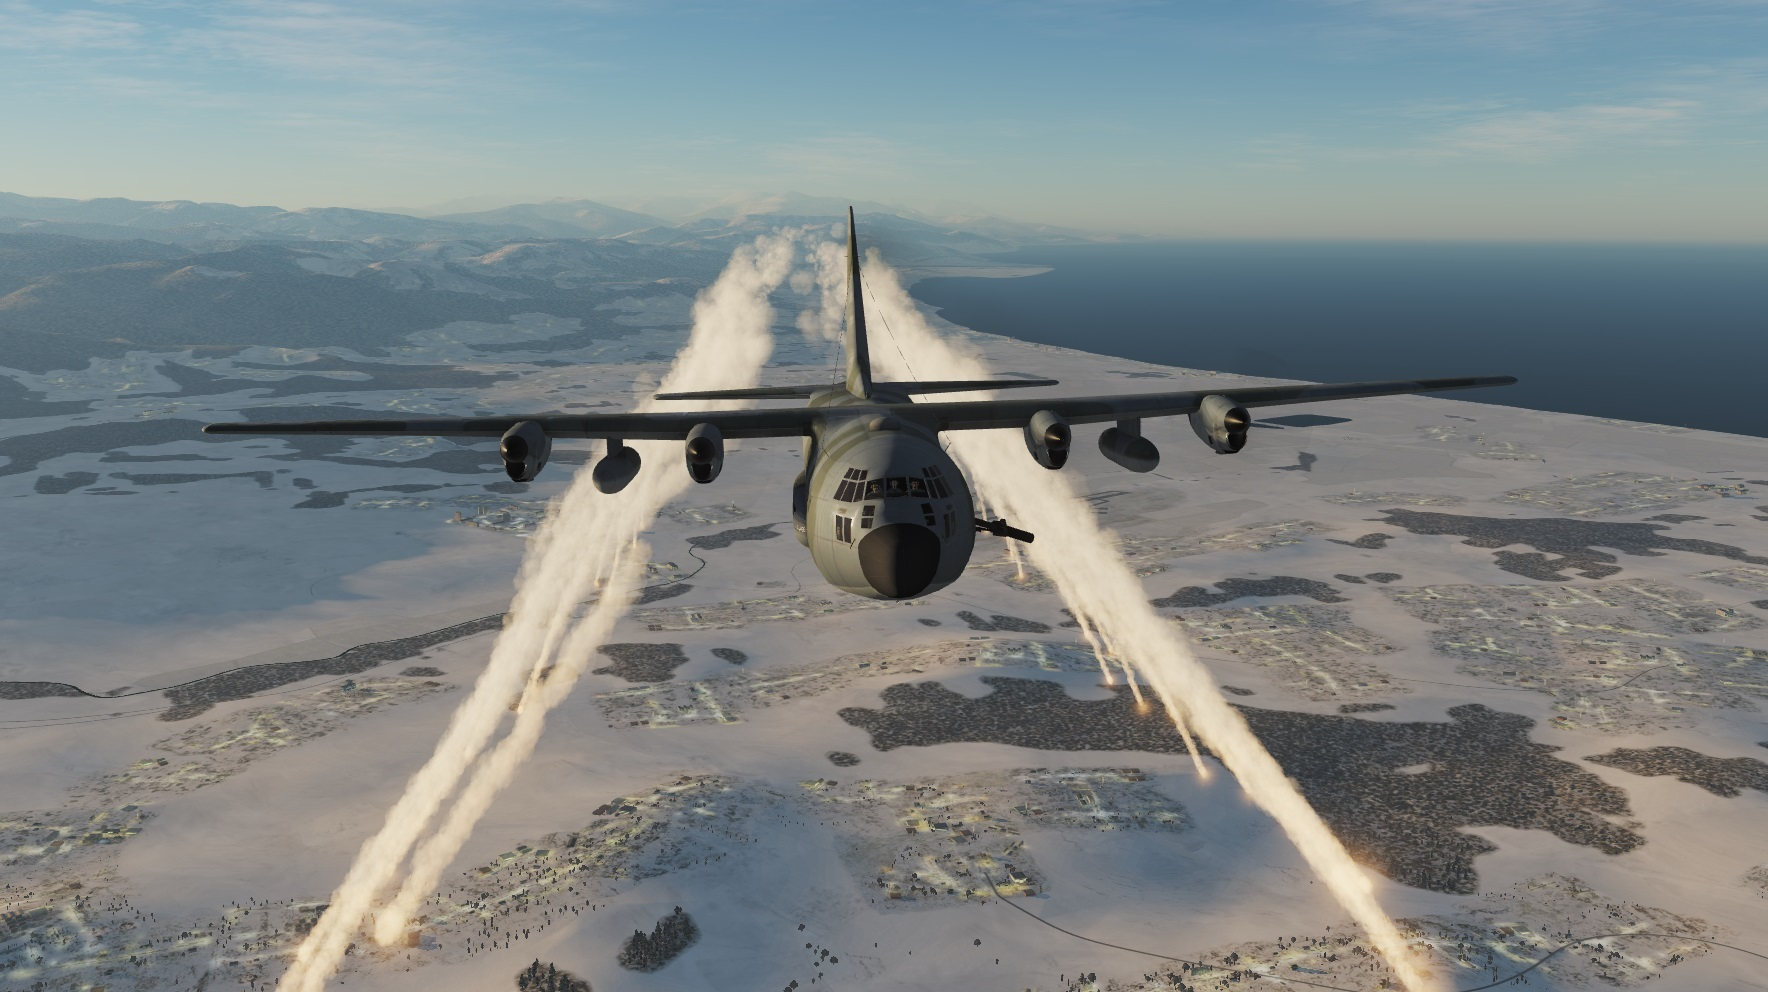 MOD AC-130 GUNSHIP AIRBORNE AND CARGO for 2.5.4 by Eric and Patrick